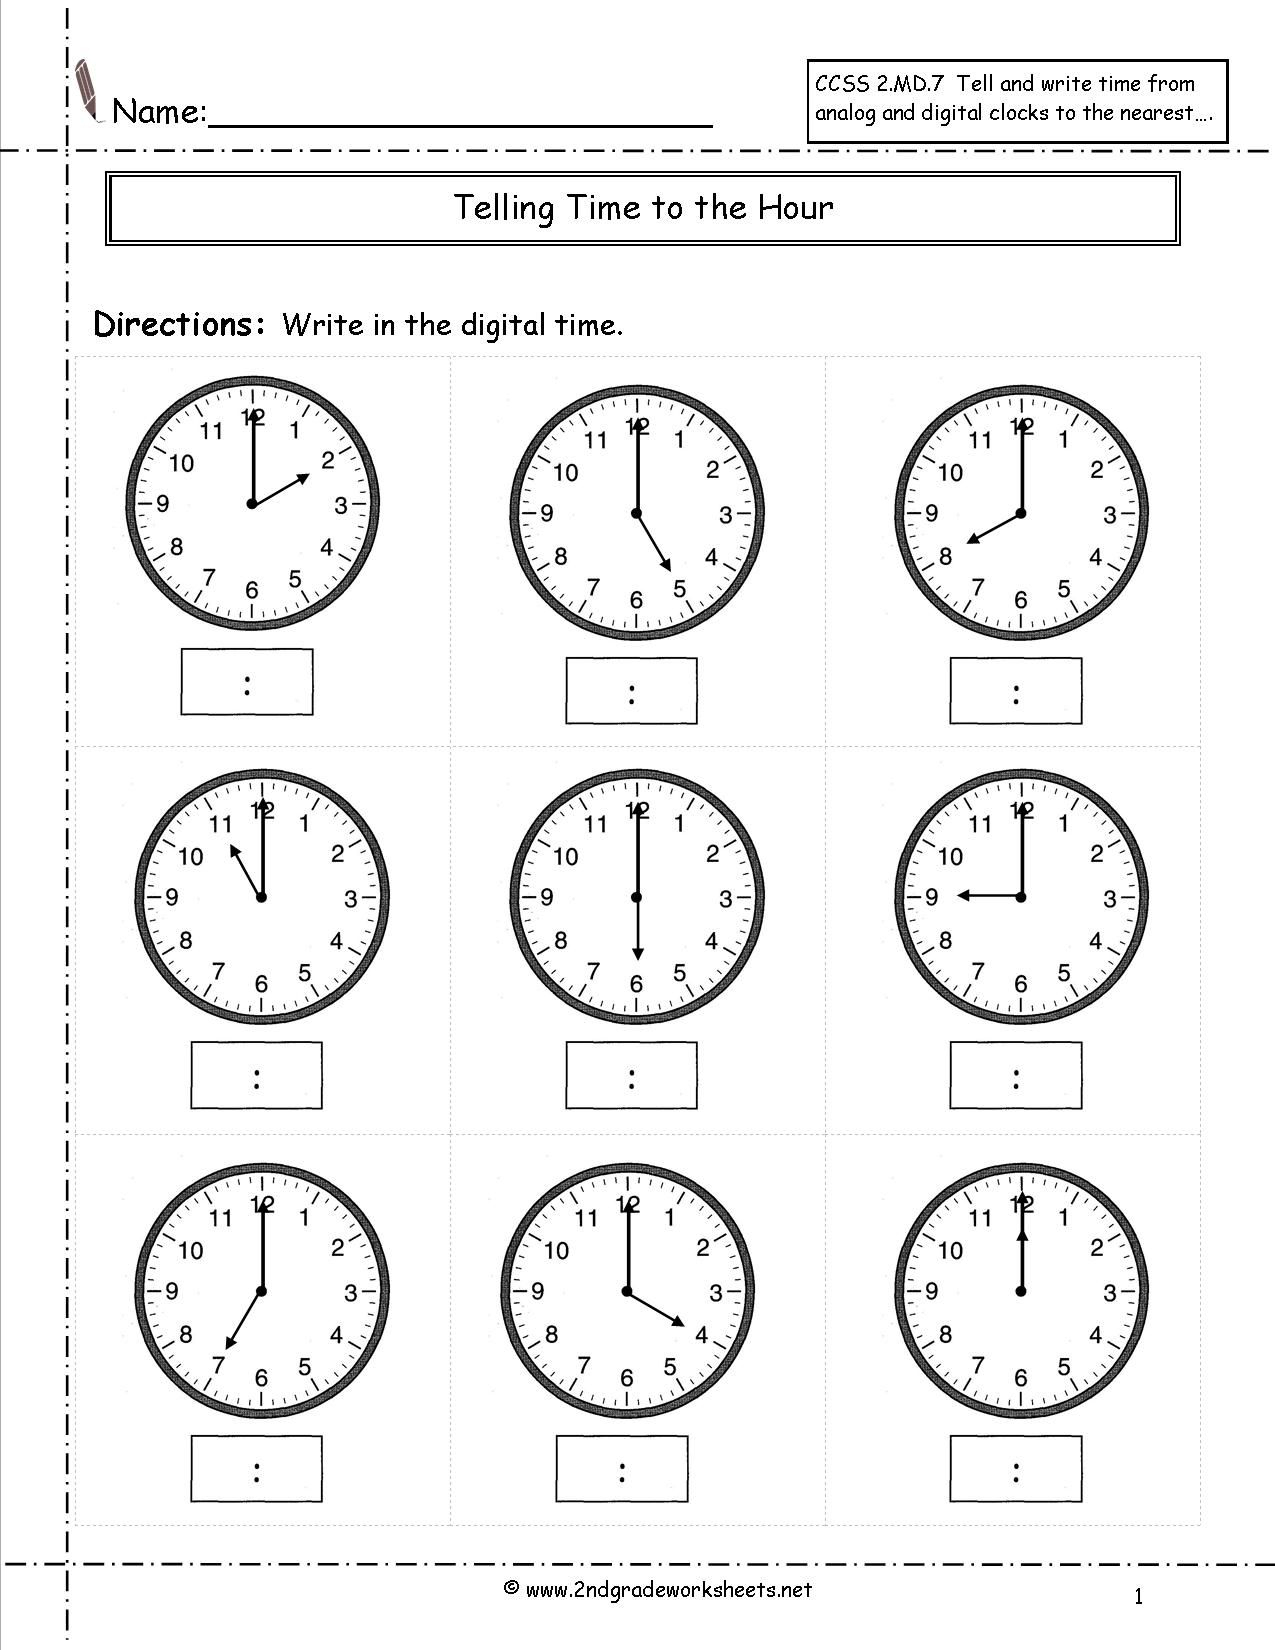 Telling Time Worksheets Half Hour | זמן | Clock Worksheets | Printable Telling Time Worksheets 1St Grade